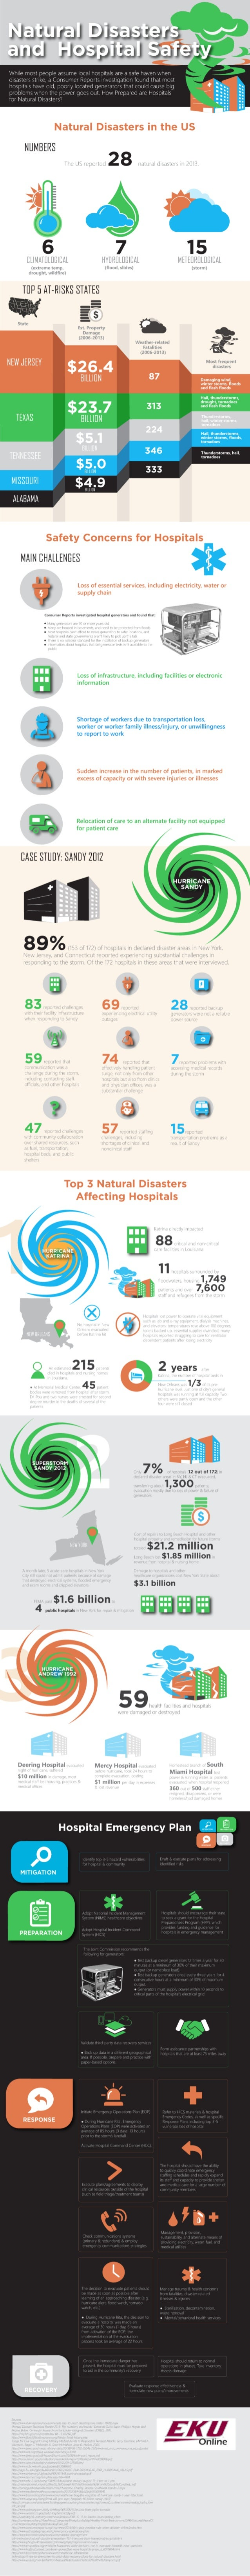 Natural Disasters and Hospital Safety Prepareness